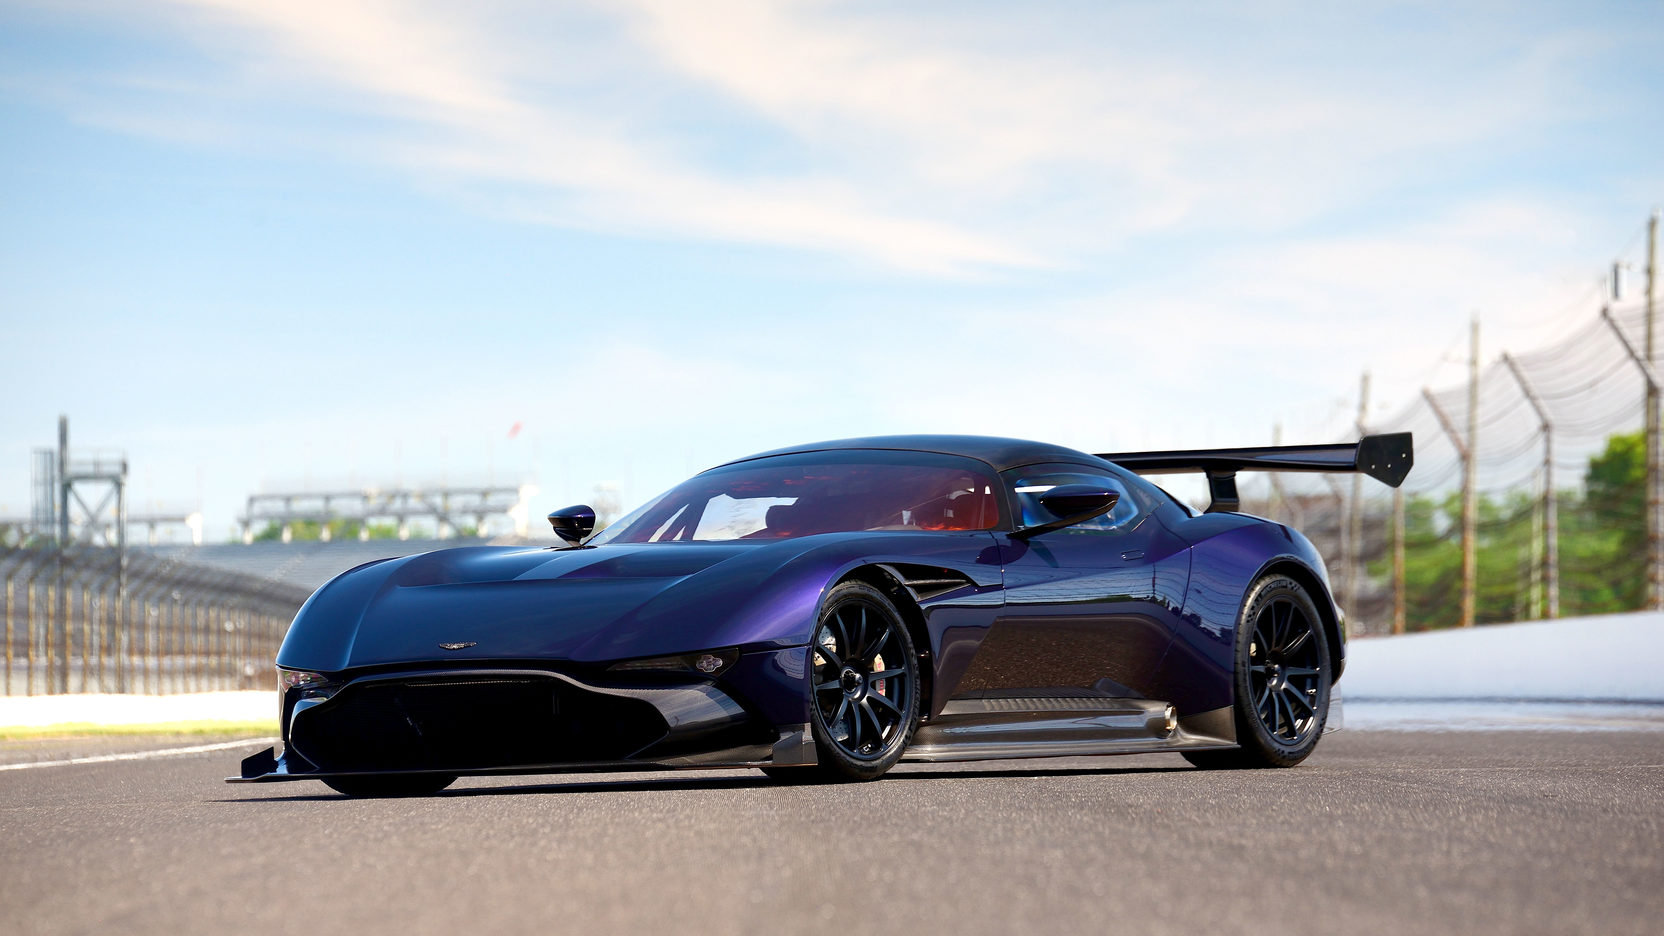 #11 of 24 Aston Martin Vulcan to be Auctioned at Monterey ...